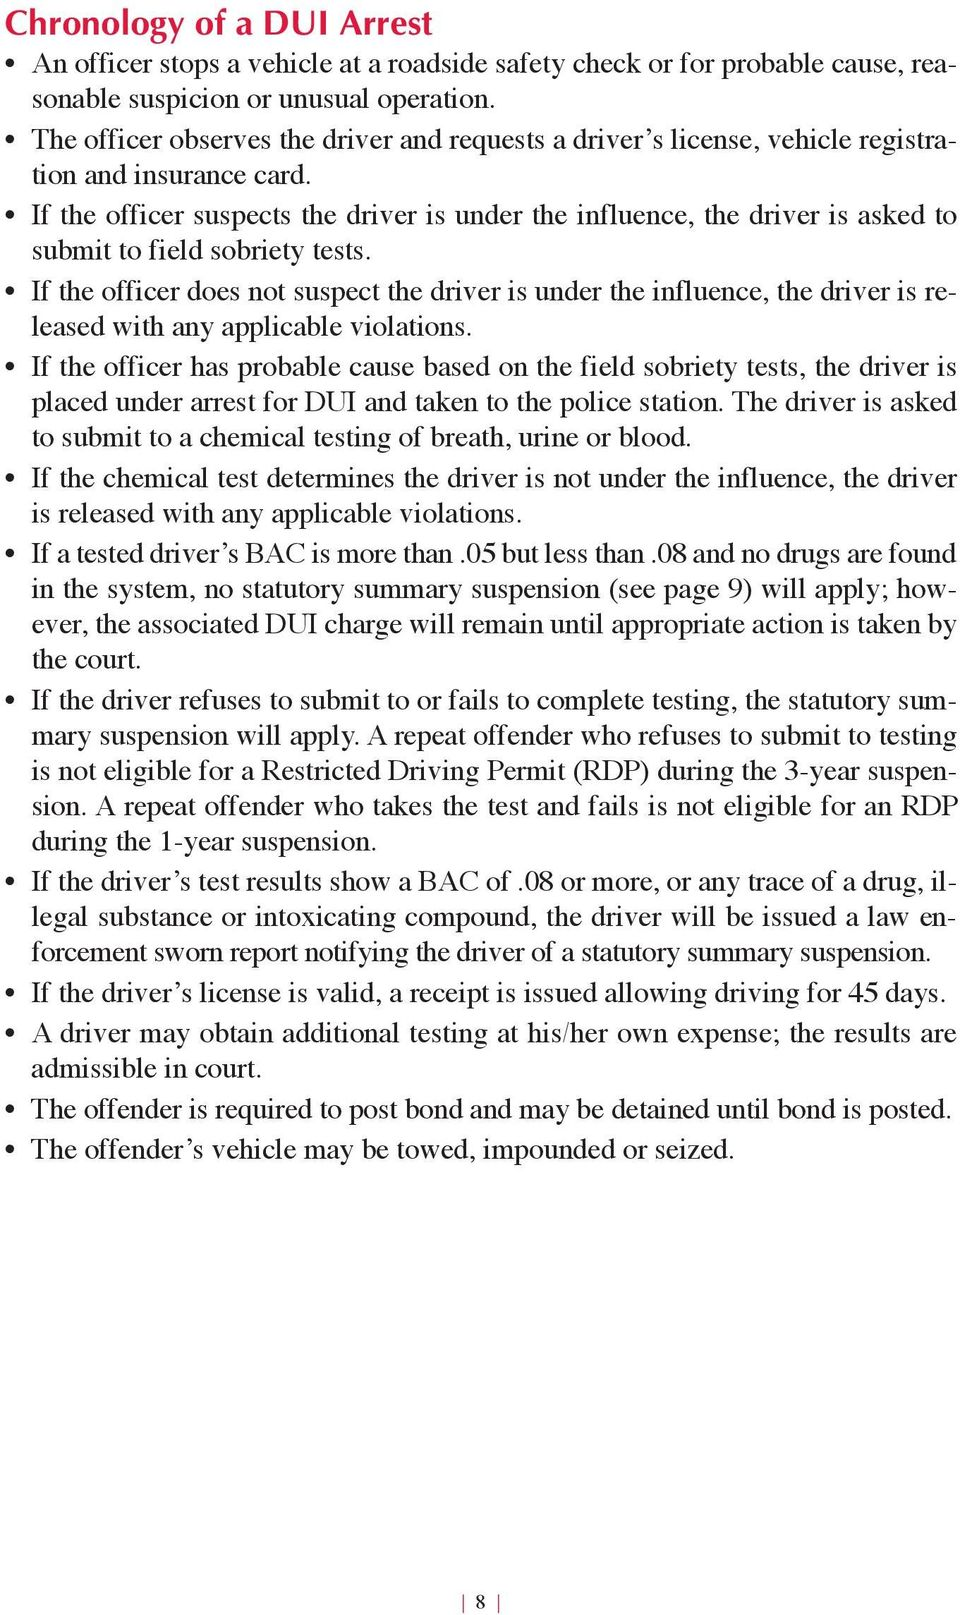 If the officer suspects the driver is under the influence, the driver is asked to submit to field sobriety tests.